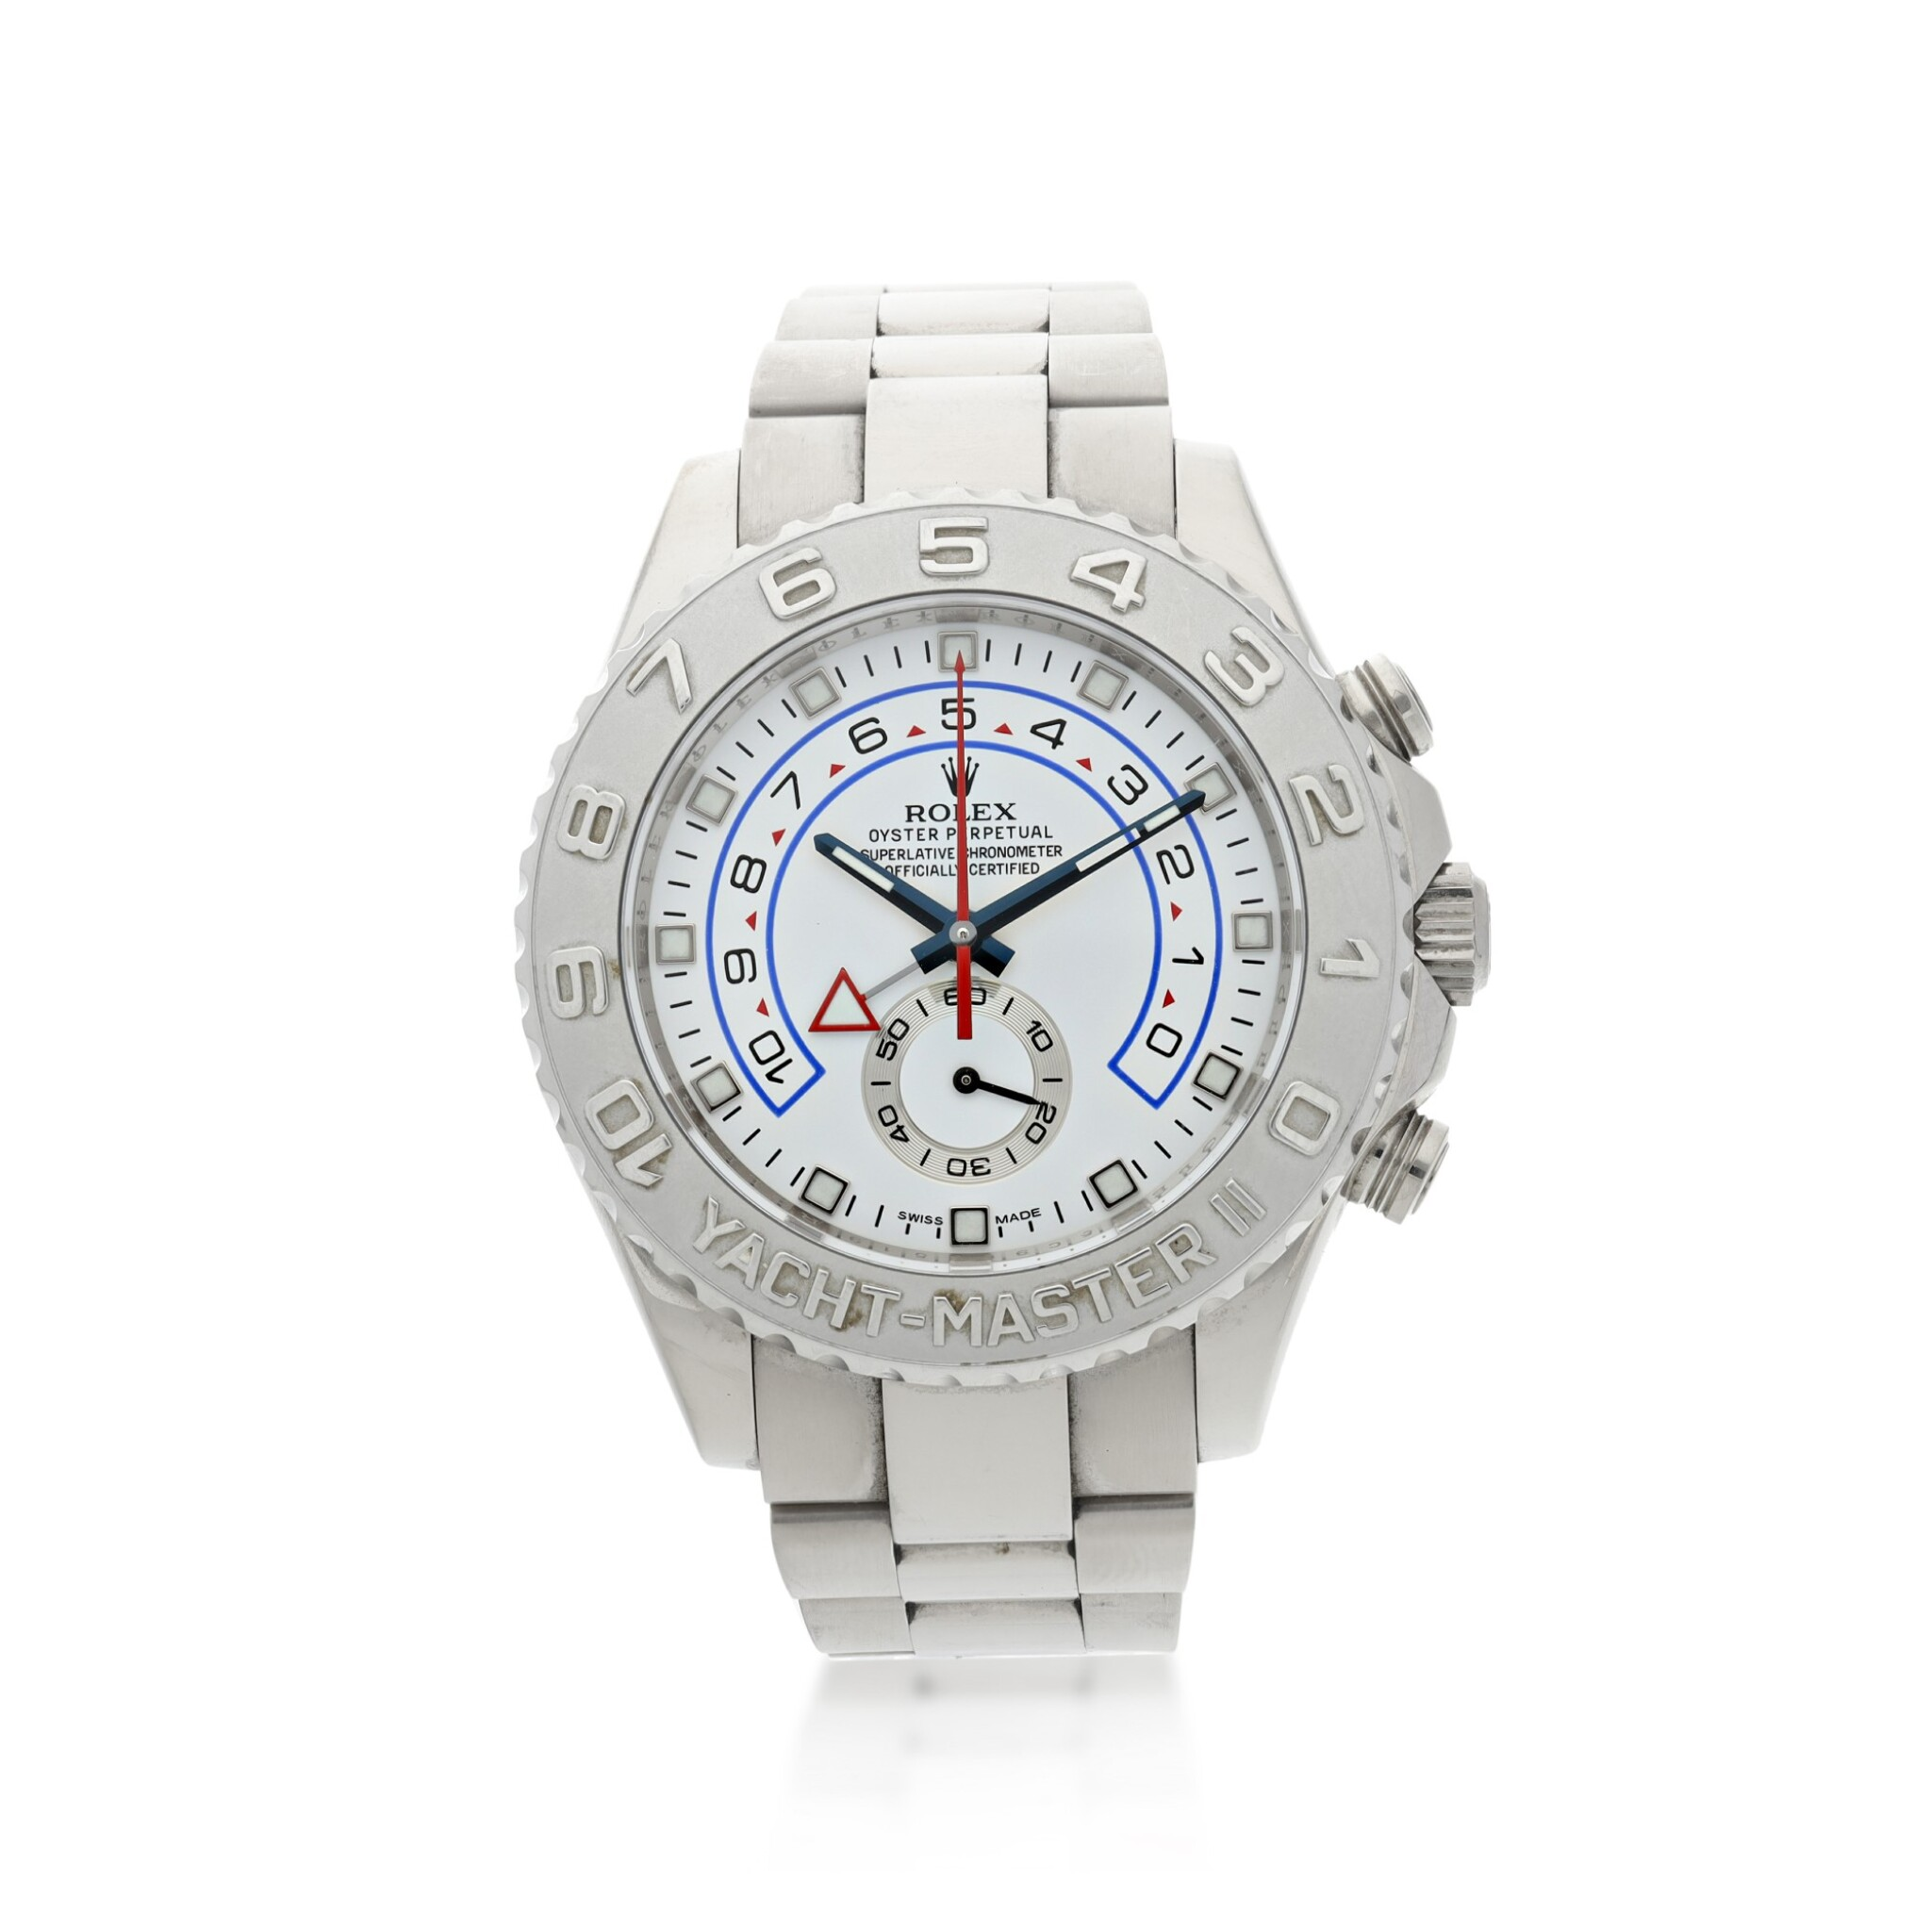 View full screen - View 1 of Lot 111. ROLEX | REFERENCE 116689 YACHT-MASTER II A WHITE GOLD AUTOMATIC FLYBACK CHRONOGRAPH WRISTWATCH WITH REGATTA COUNTDOWN AND BRACELET, CIRCA 2008.